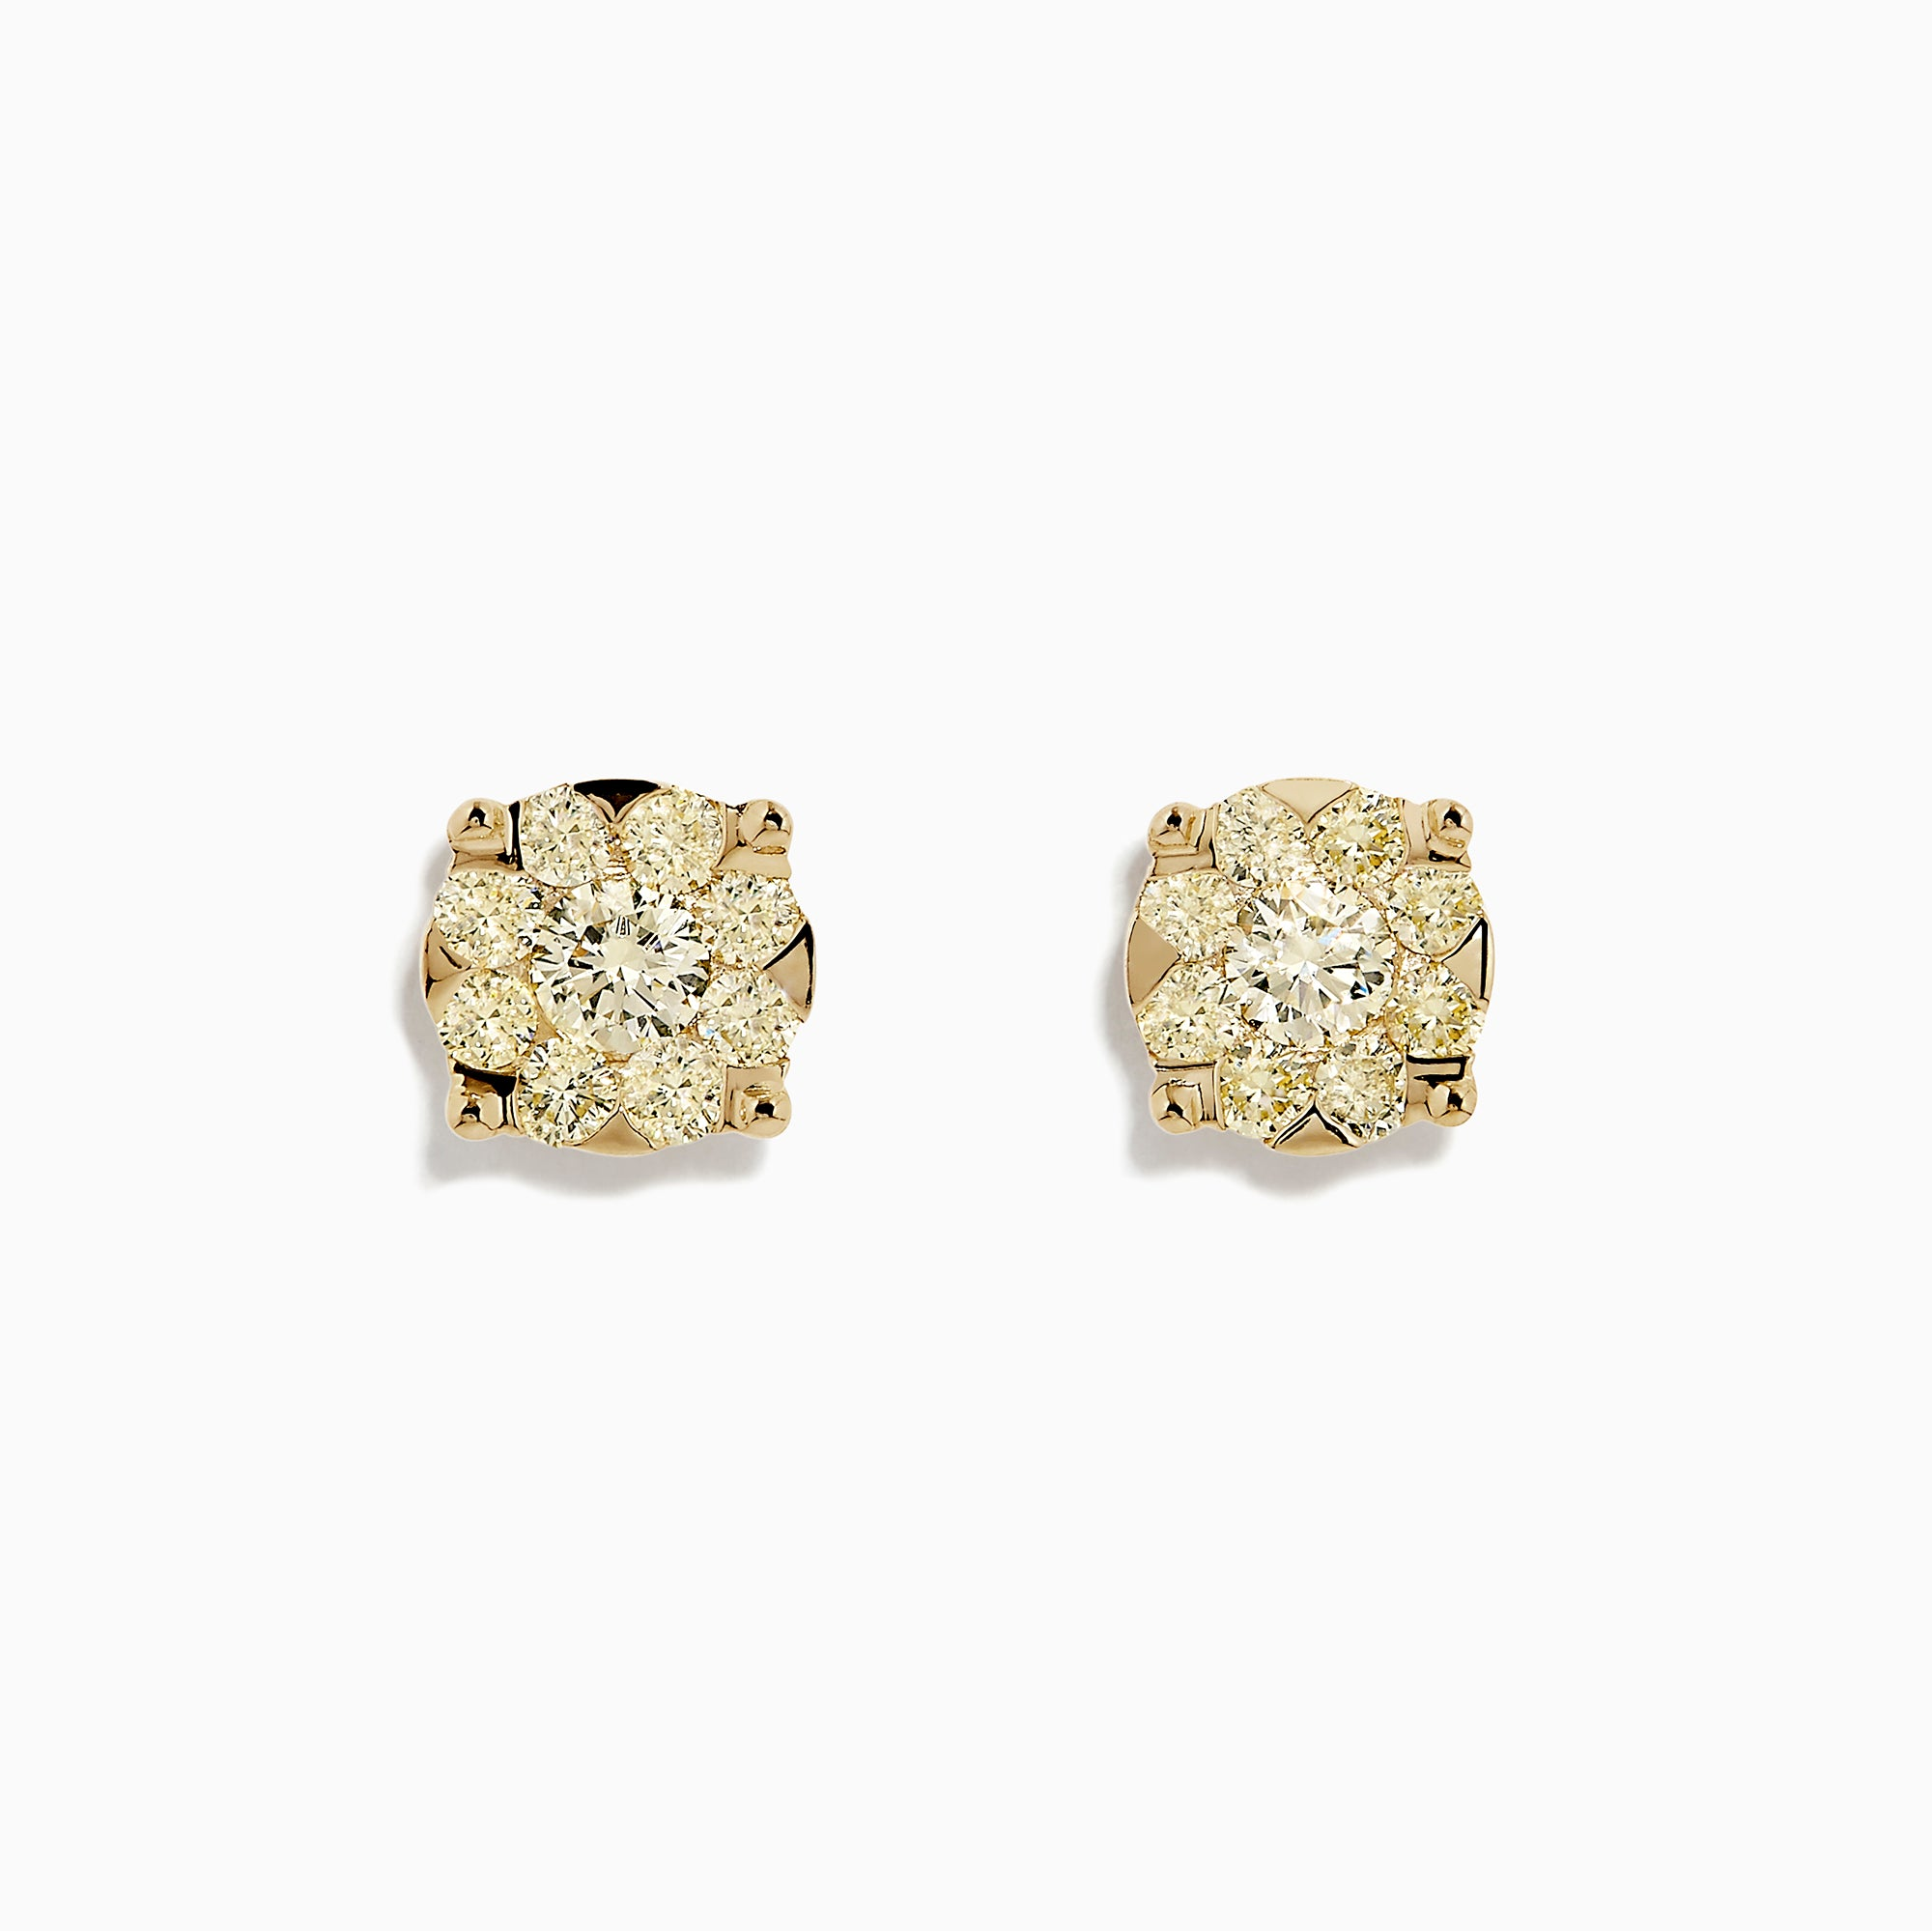 Effy Canare 14K Yellow Gold Yellow Diamond Cluster Earrings, 1.41 TCW